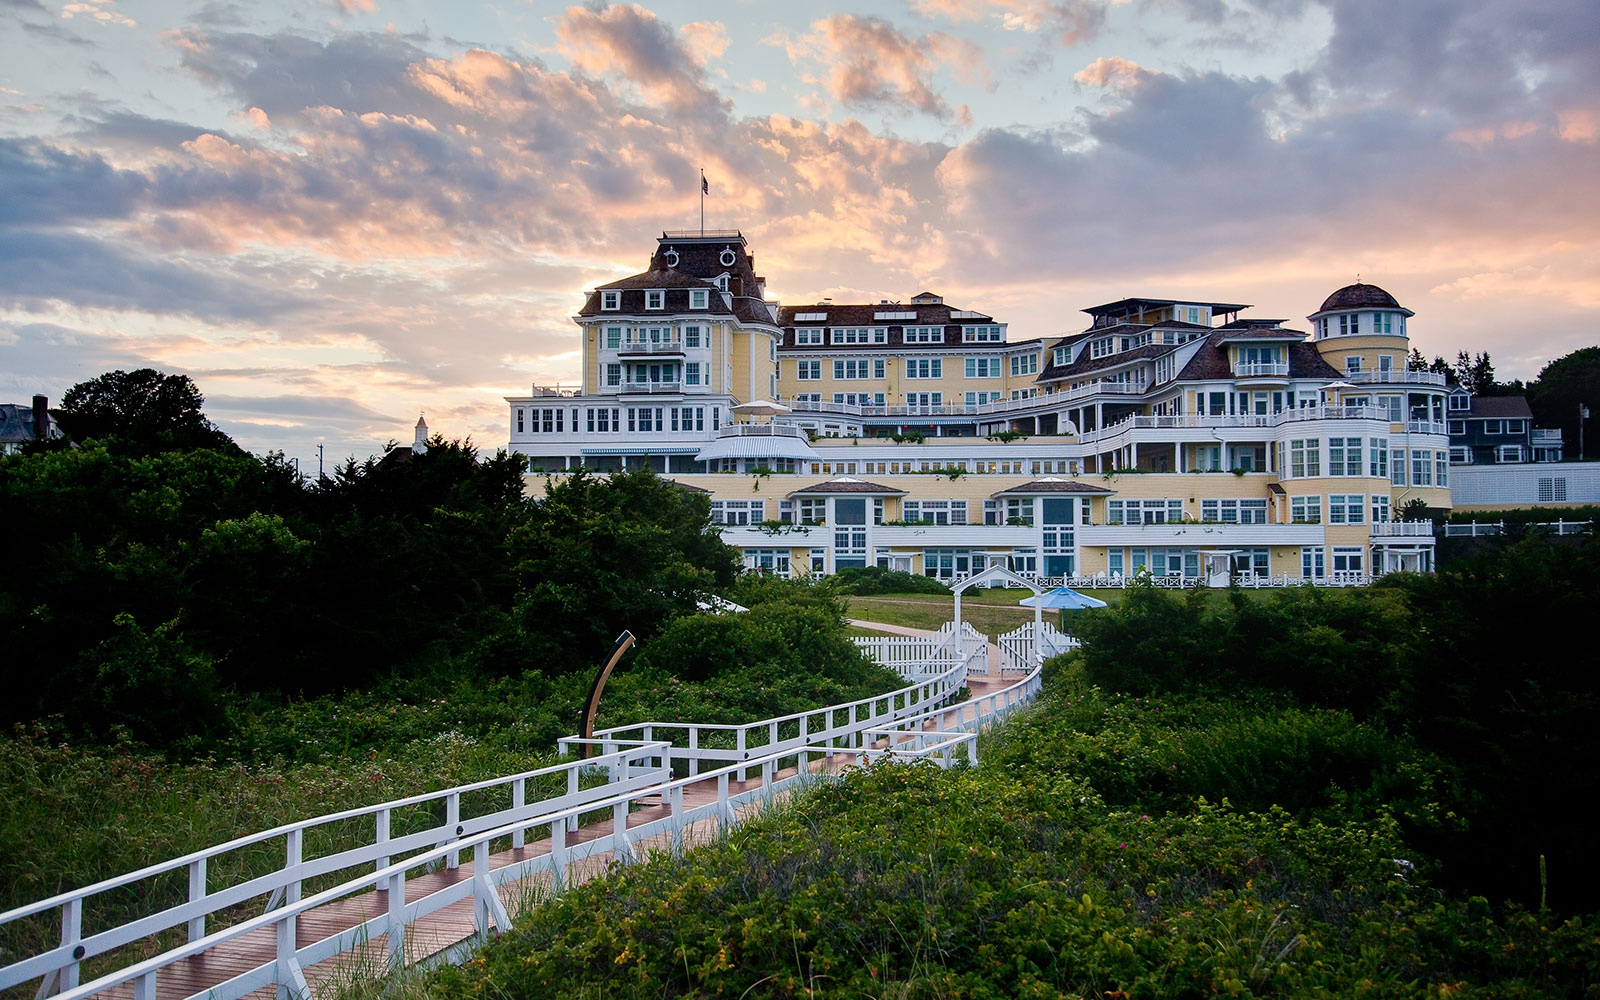 Ocean House in Westerly, Rhode Island